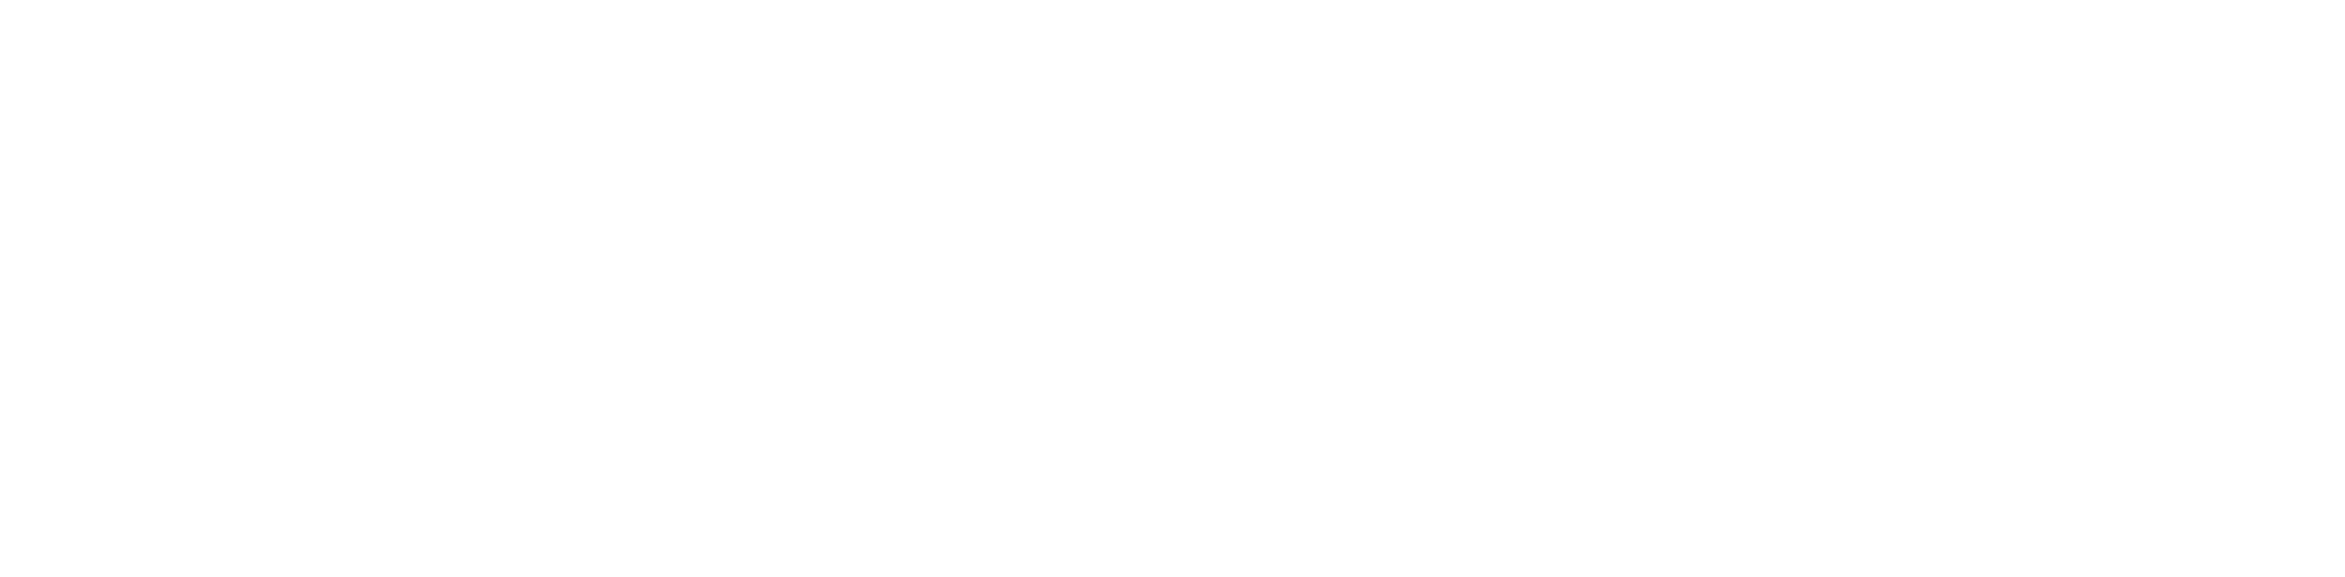 Guide to Water-Related Collective Action